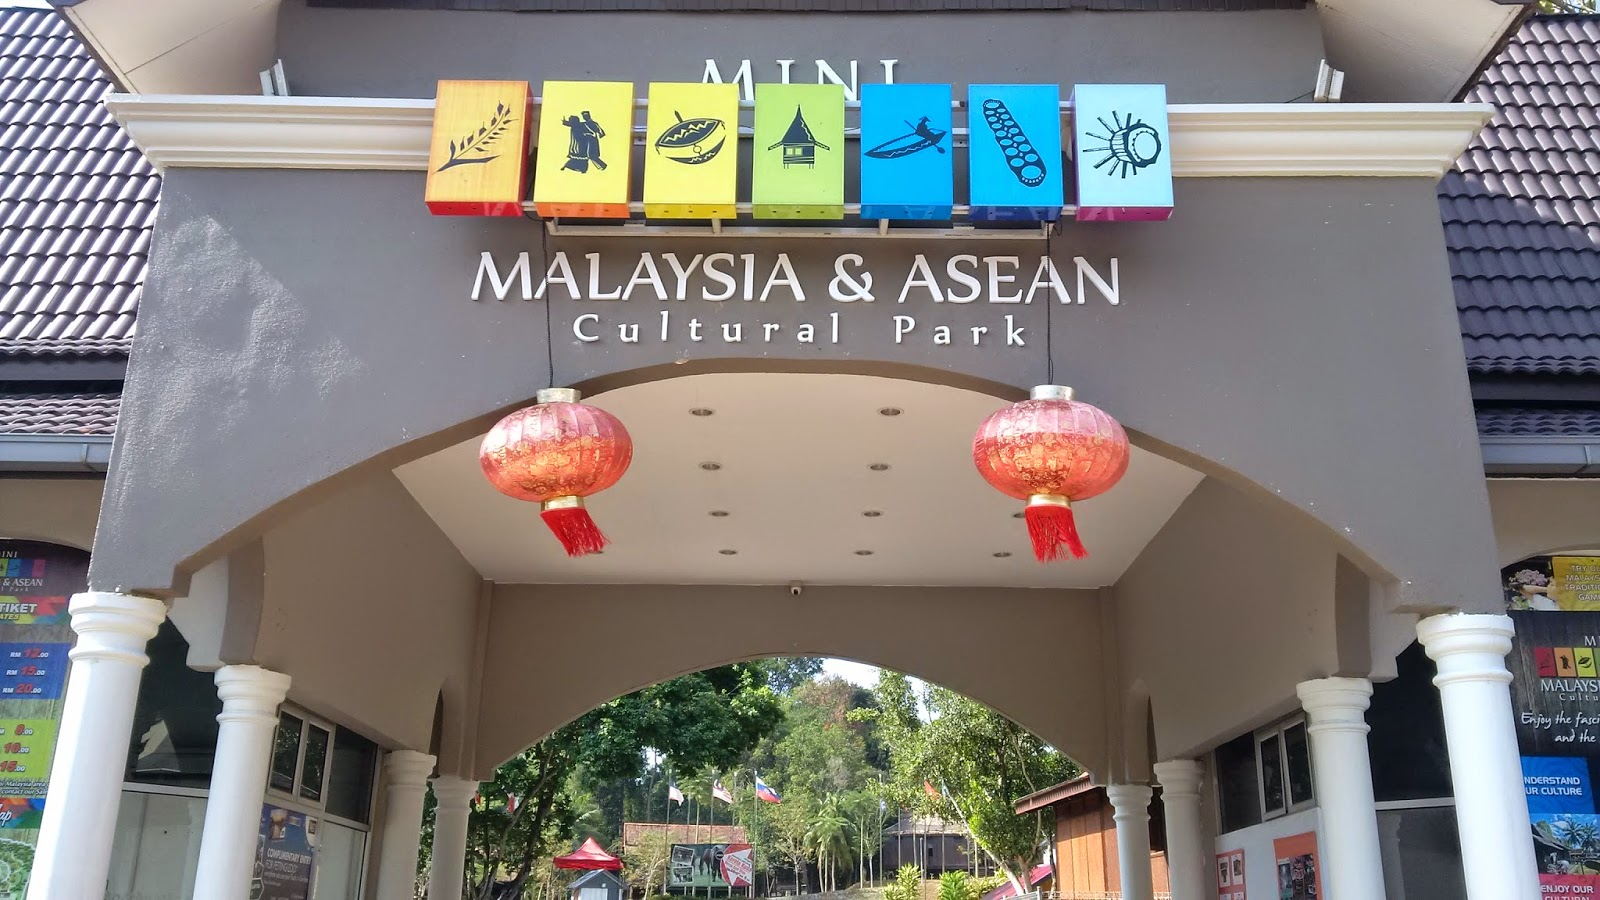 "mini malaysia & asean cultural park melaka, traditional architecture, traditional house style,""malaysia travel influencer,  malaysia influencer,  blog with cris,  malaysia blogger,  malaysia freelance model,  mini malaysia melaka blog,  harga tiket mini malaysia melaka 2019,  taman mini malaysia melaka harga tiket 2019,  harga tiket mini malaysia melaka 2018,  harga tiket taman mini malaysia,  taman mini malaysia melaka harga tiket 2018,  mini malaysia & asean cultural park ayer keroh,  mini malaysia melaka ticket price 2018,  rumah tradisional di taman mini malaysia,  taman lebah melaka,  kenako events & management sdn bhd,  taman rama rama melaka,  zoo melaka harga tiket 2019,  malacca planetarium adventure science centre,  ayer keroh activities,  melaka planetarium review,  taman burung melaka,  kolam renang mini malaysia melaka,  melaka bird park,  zoo melaka price,  equatorial hotel melaka,  historical places in malacca,  upside down house melaka wikipedia,  taman mini malaysia berhantu,  jawatan kosong mini malaysia melaka,  taman malaysia,  traditional malaysia houses, wood houses, travel, tourism"